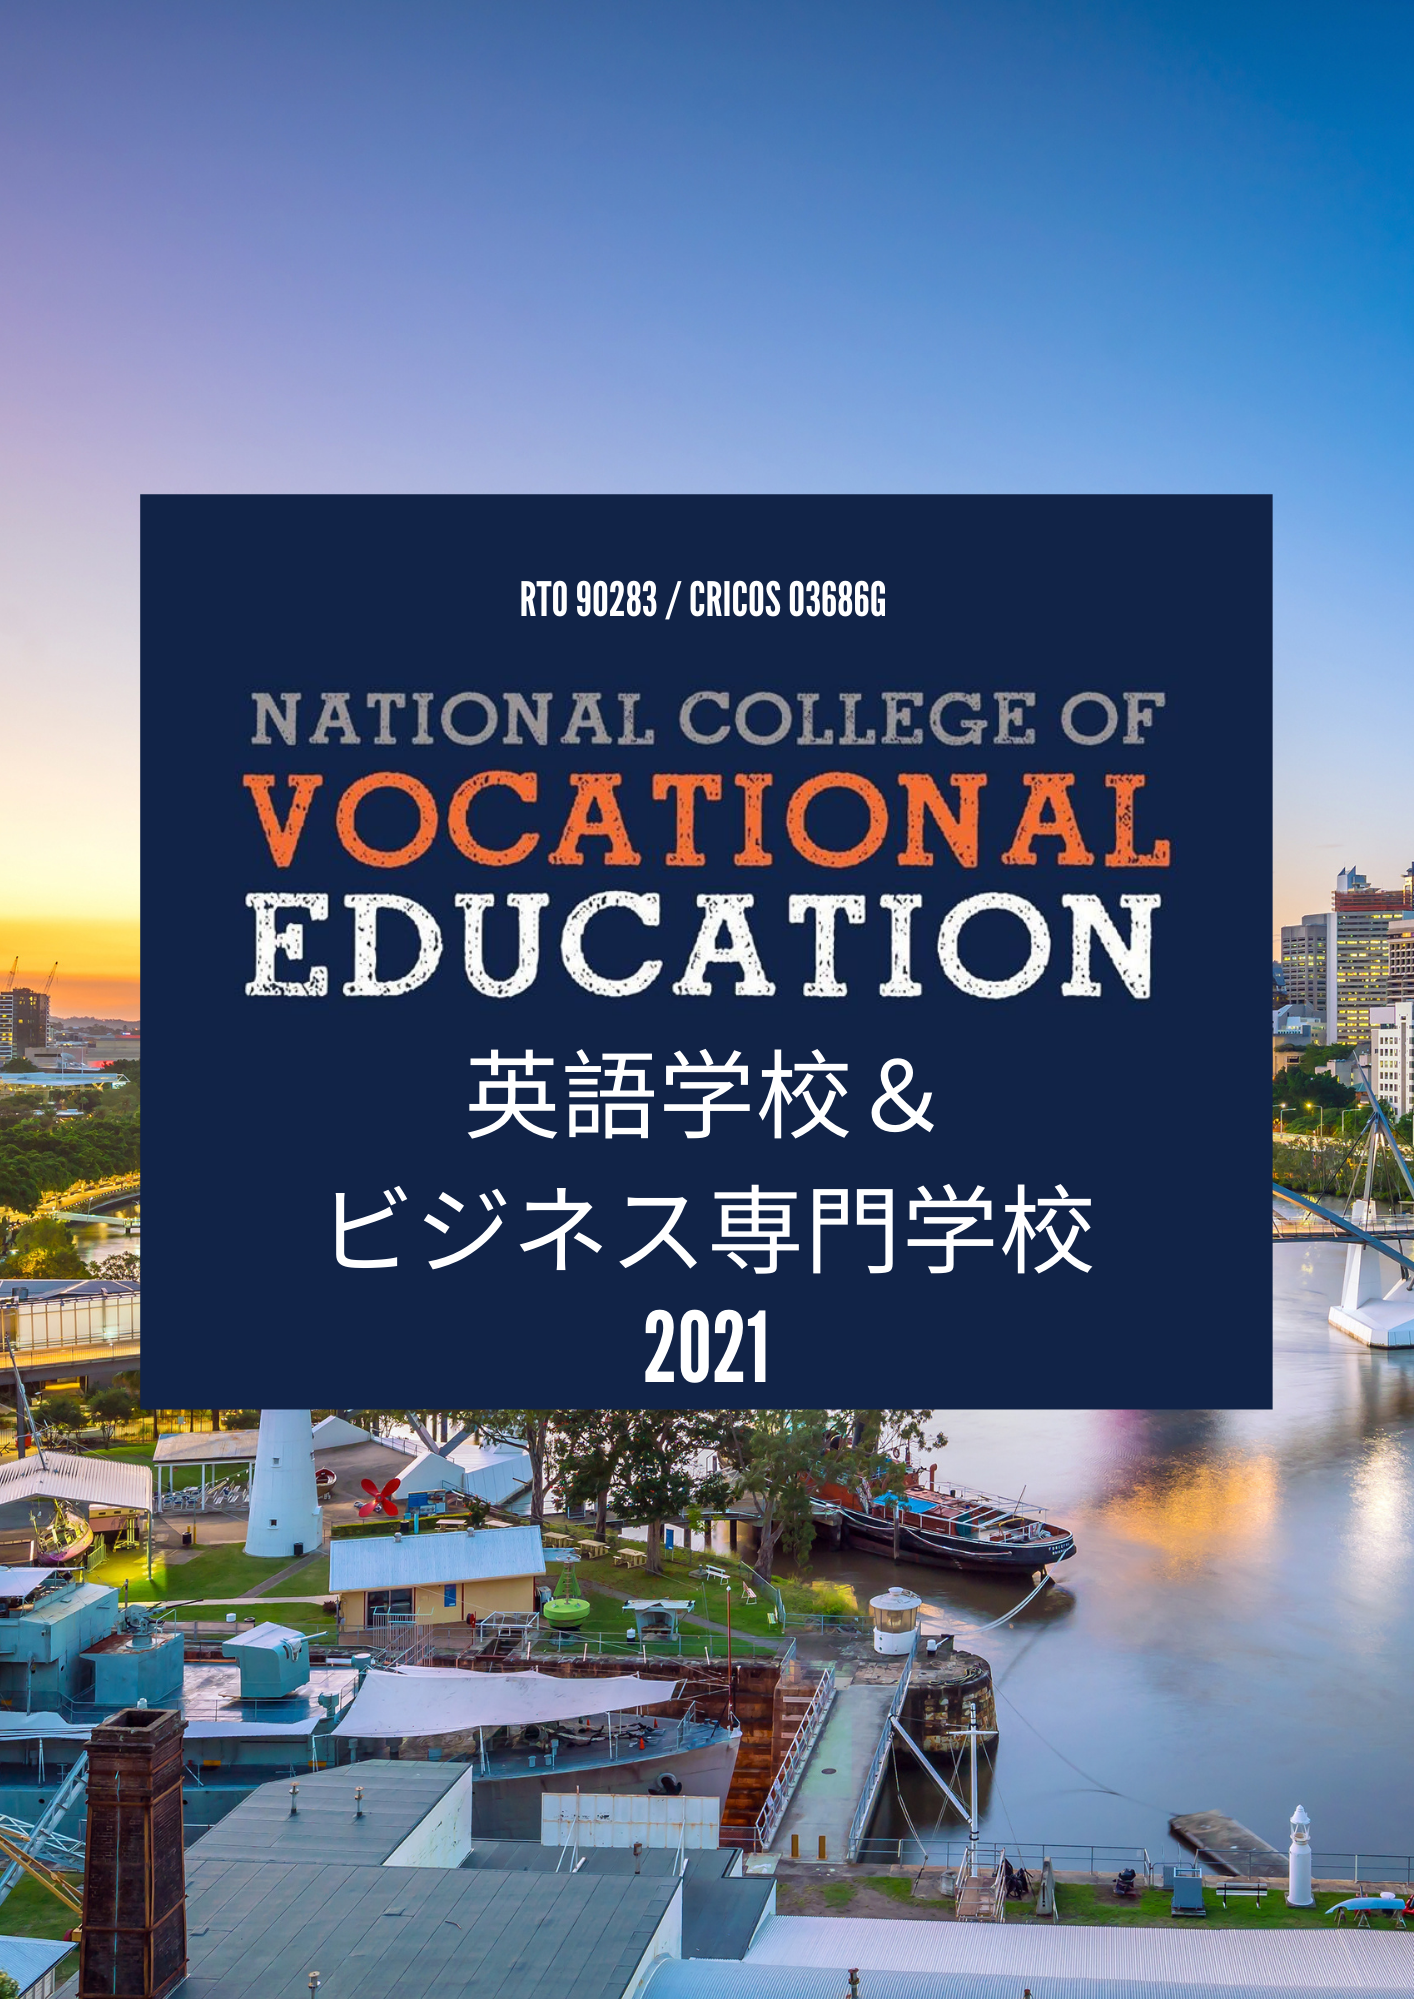 Ncve course introduction   japanese